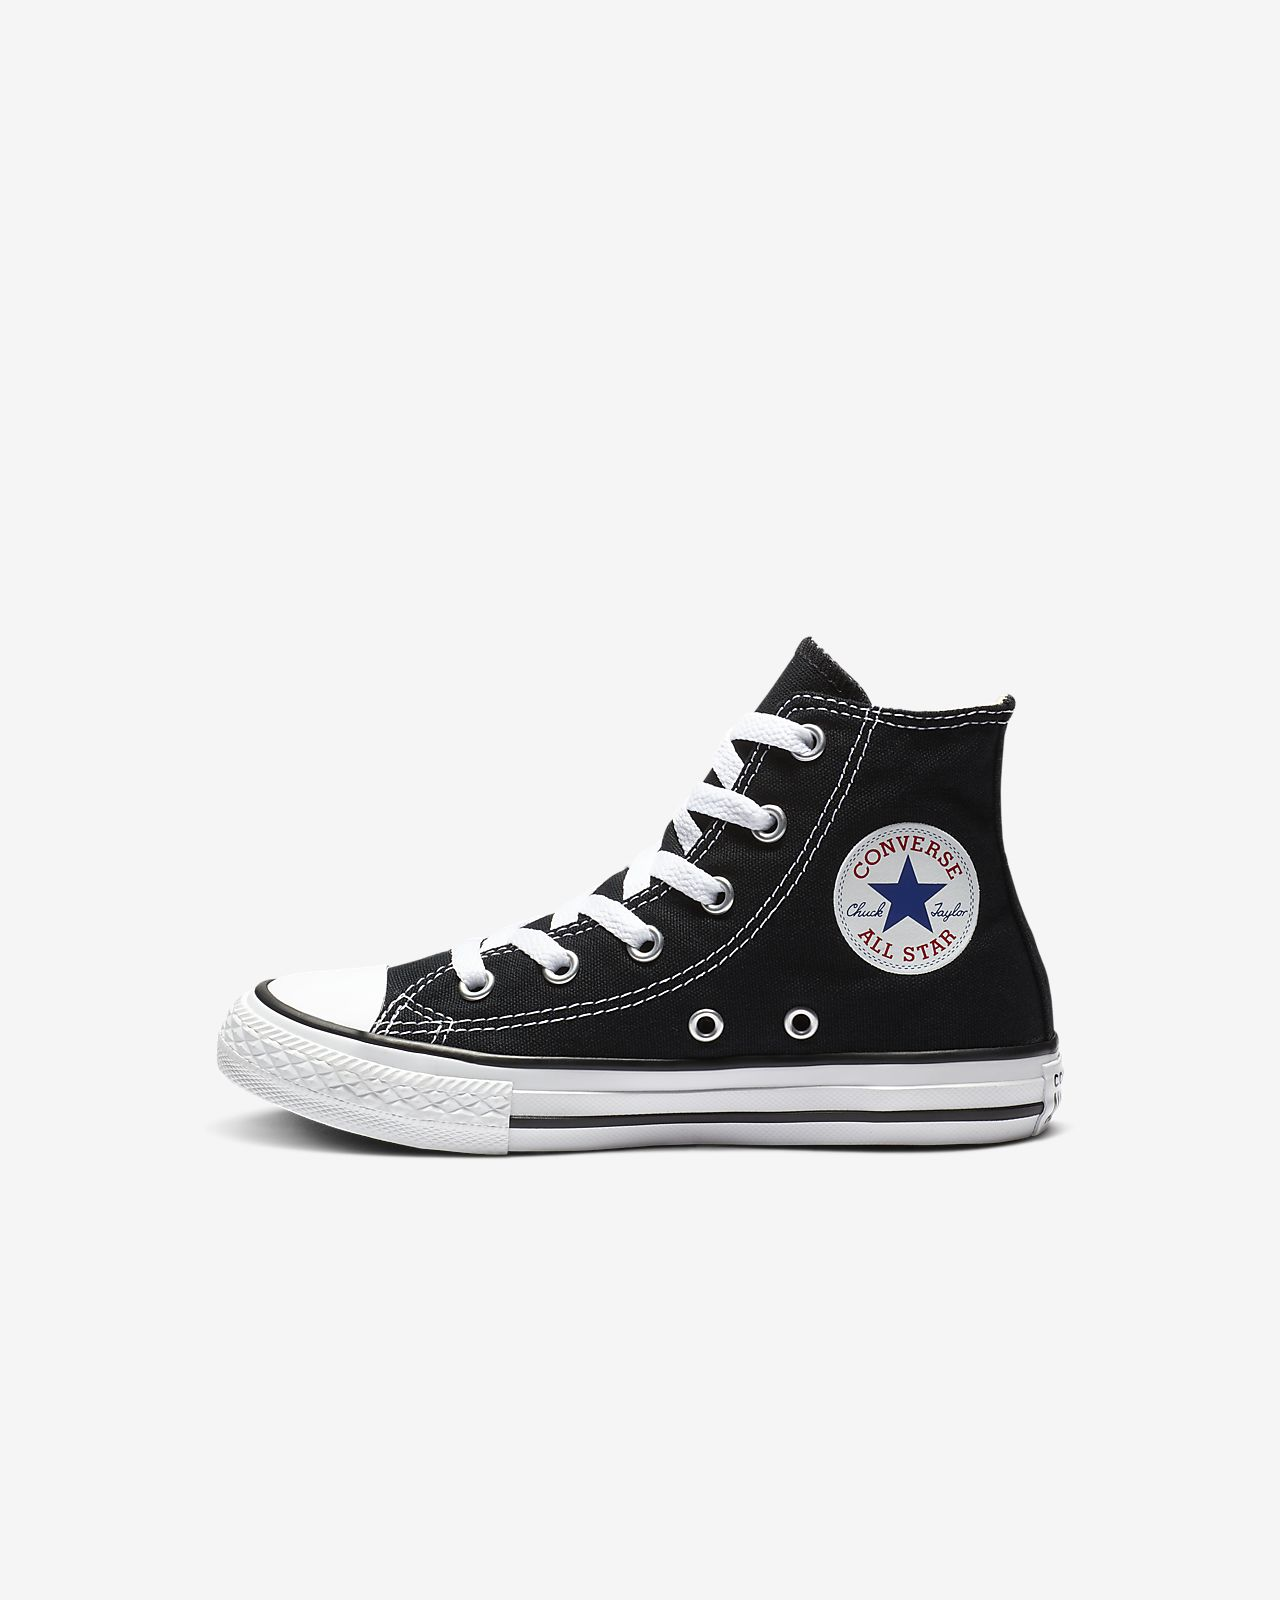 8e12048b2 Converse Chuck Taylor All Star High Top Little Kids' Shoe